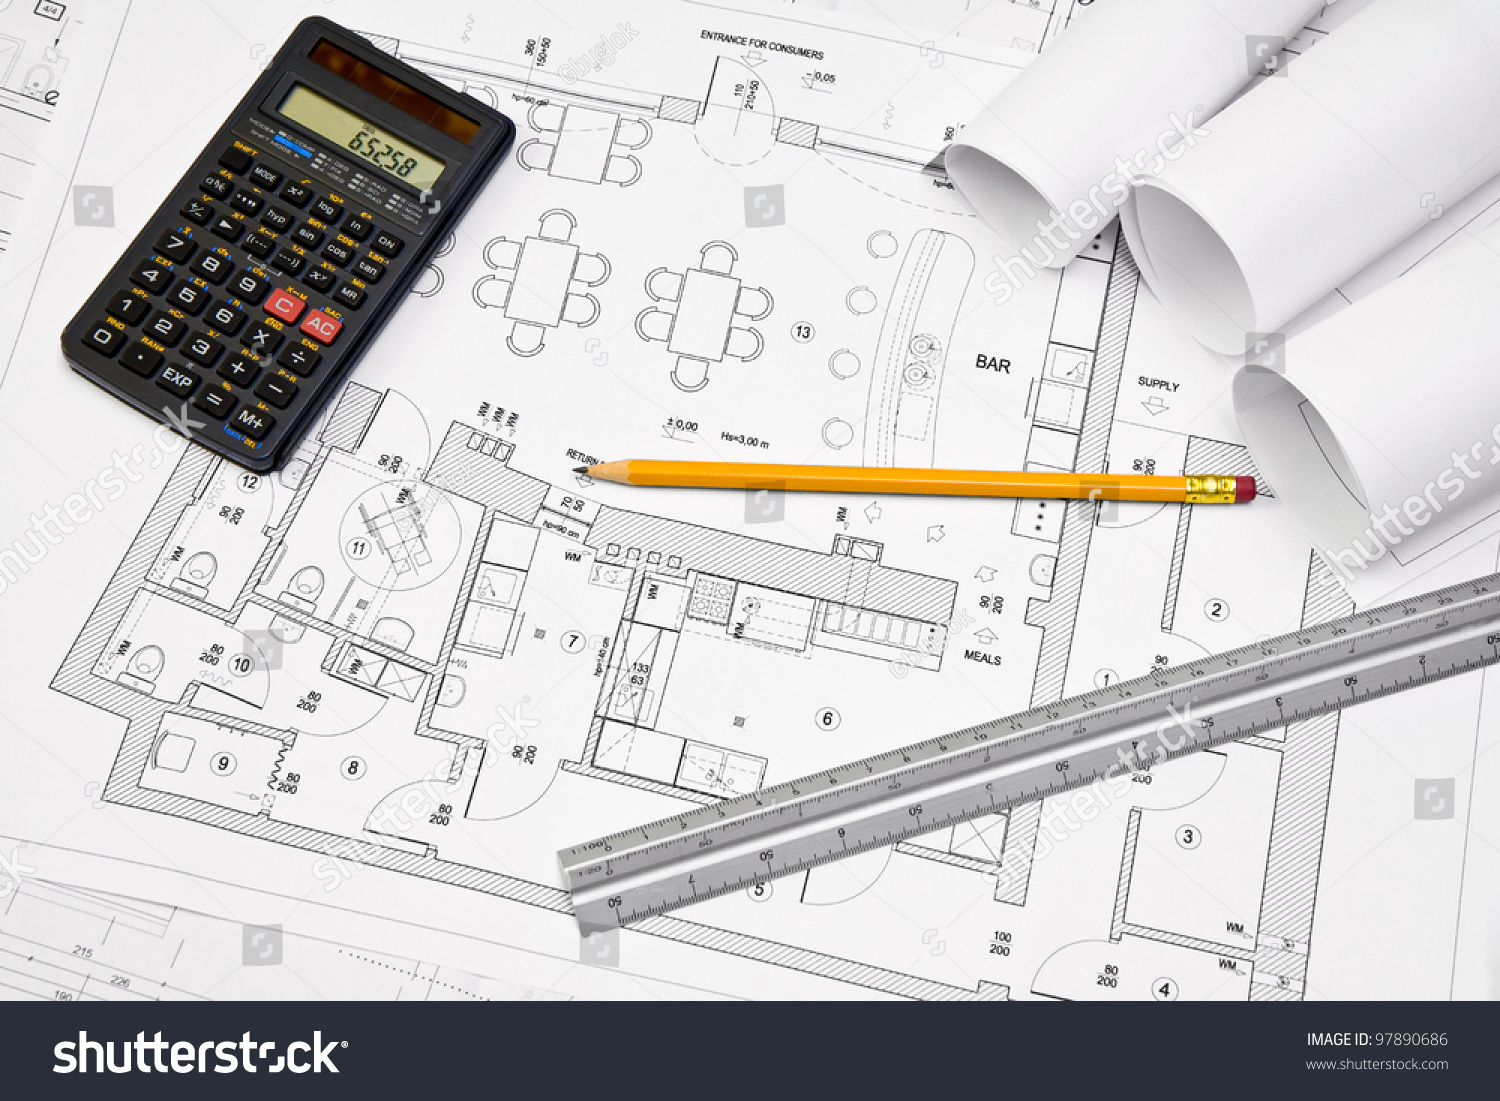 Calculator scale ruler pencil on architectural stock photo for Blueprint estimator